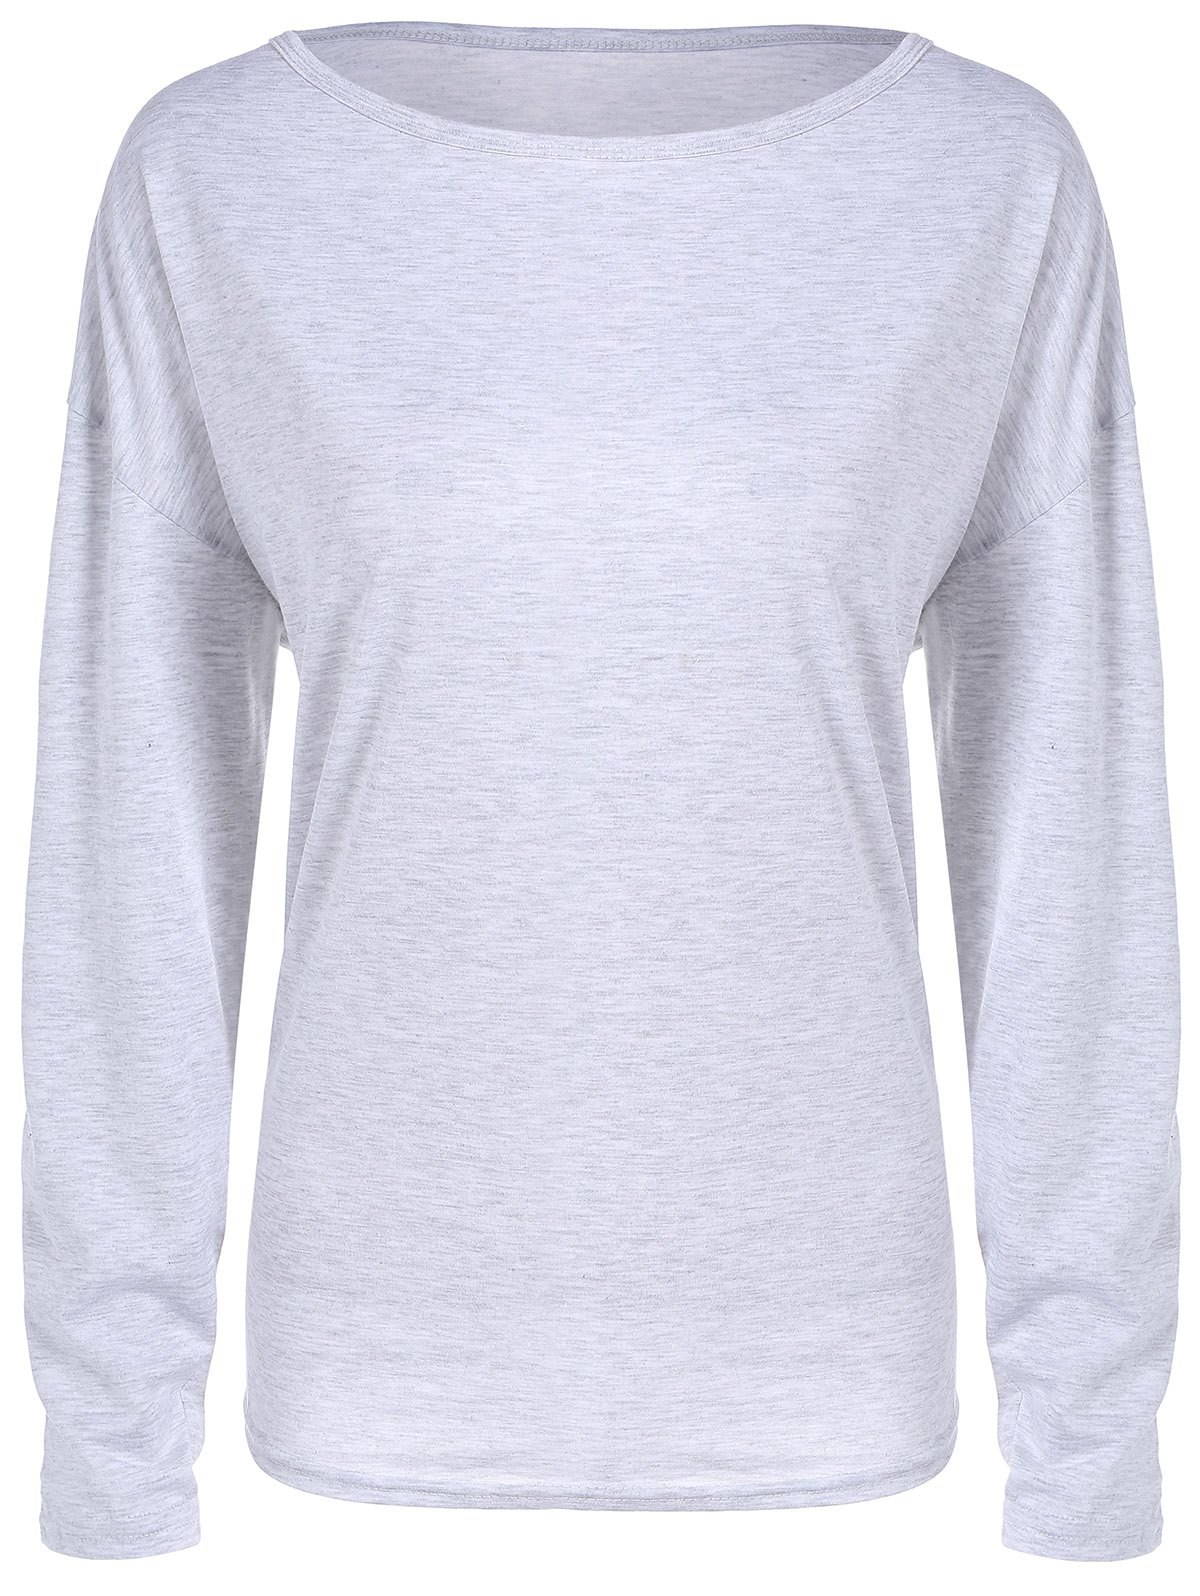 Best Batwing Sleeves T-Shirt